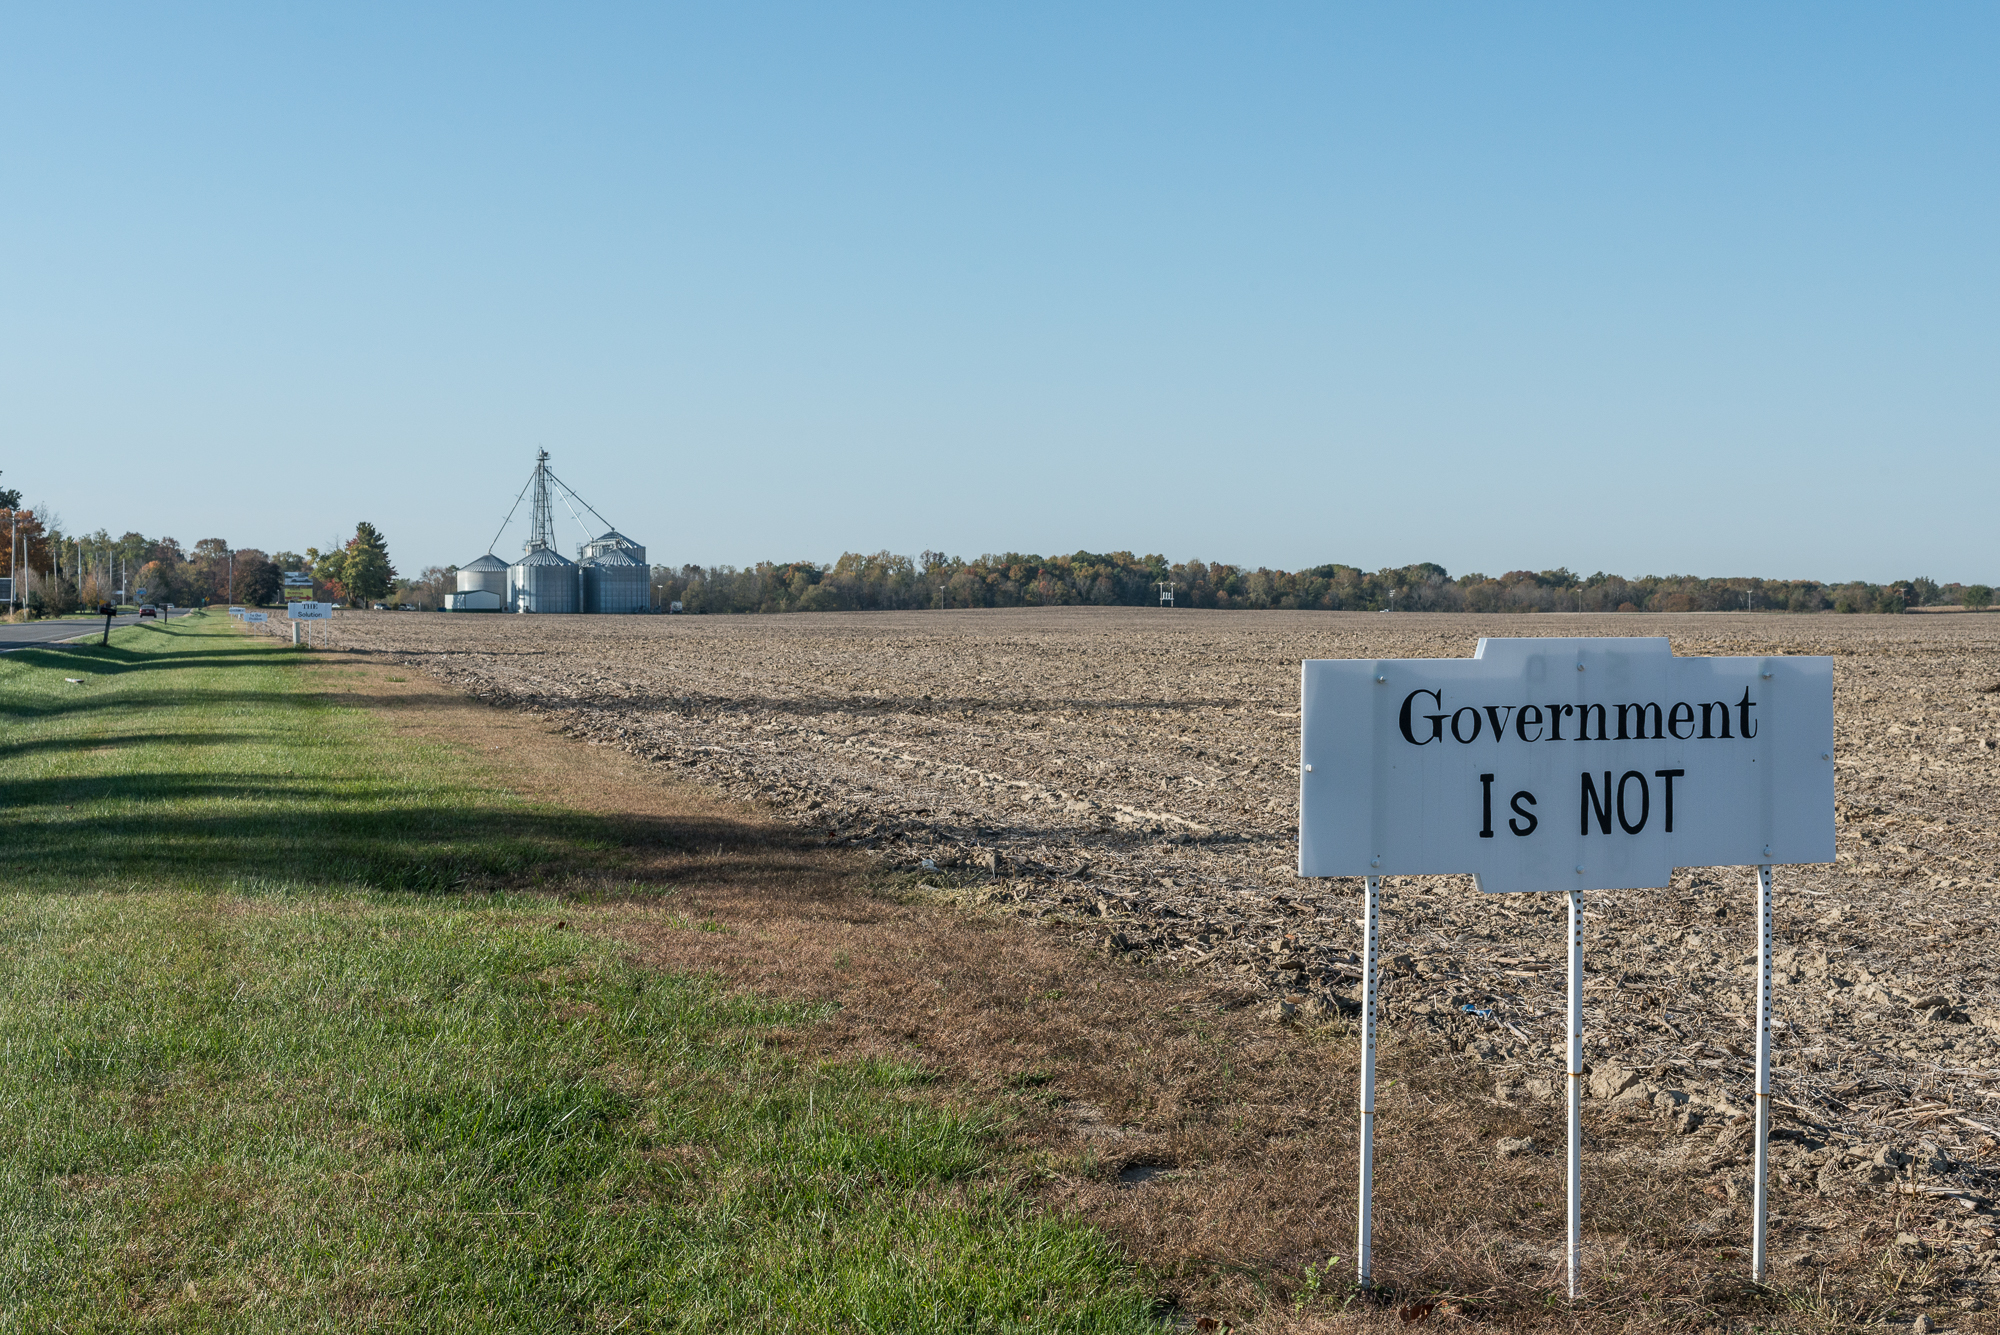 Government is not, near Spencer, Indiana, 2015